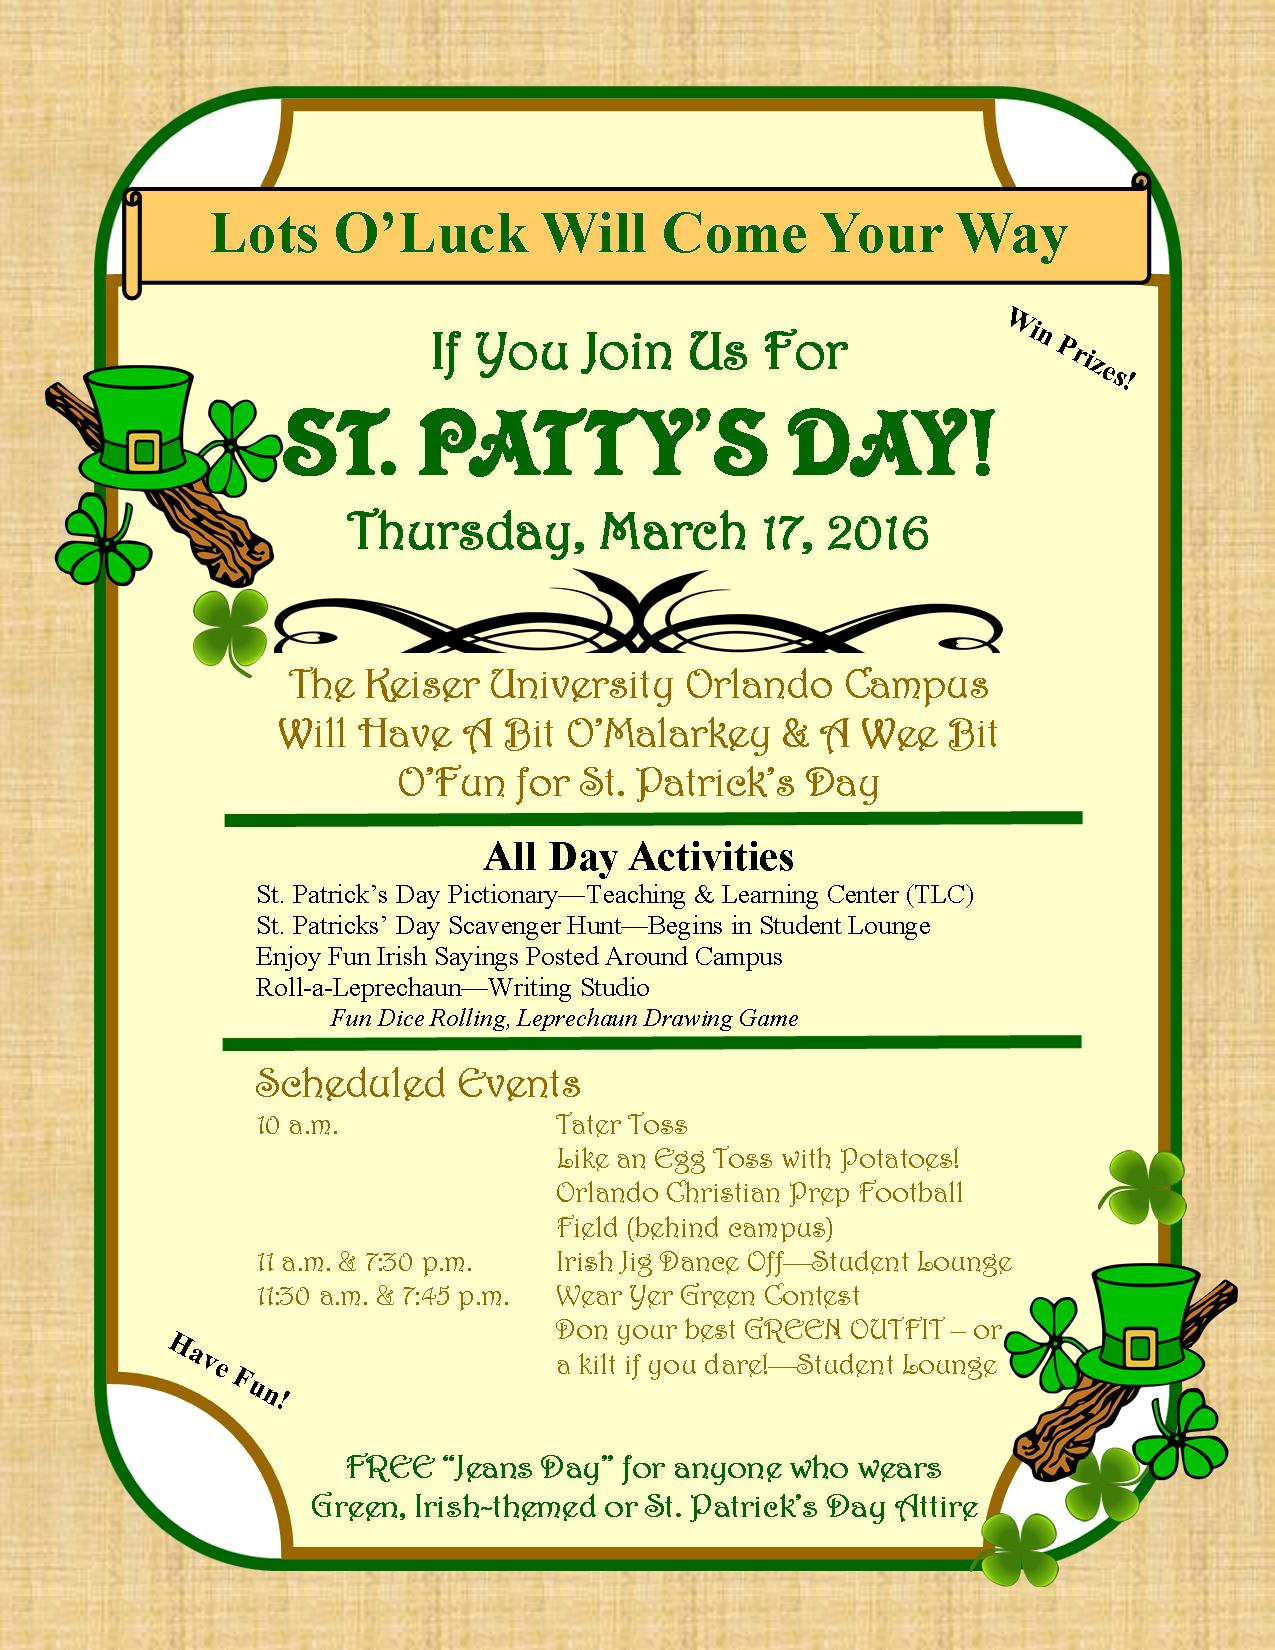 St. Patrick's Day Activities at the Orlando Campus